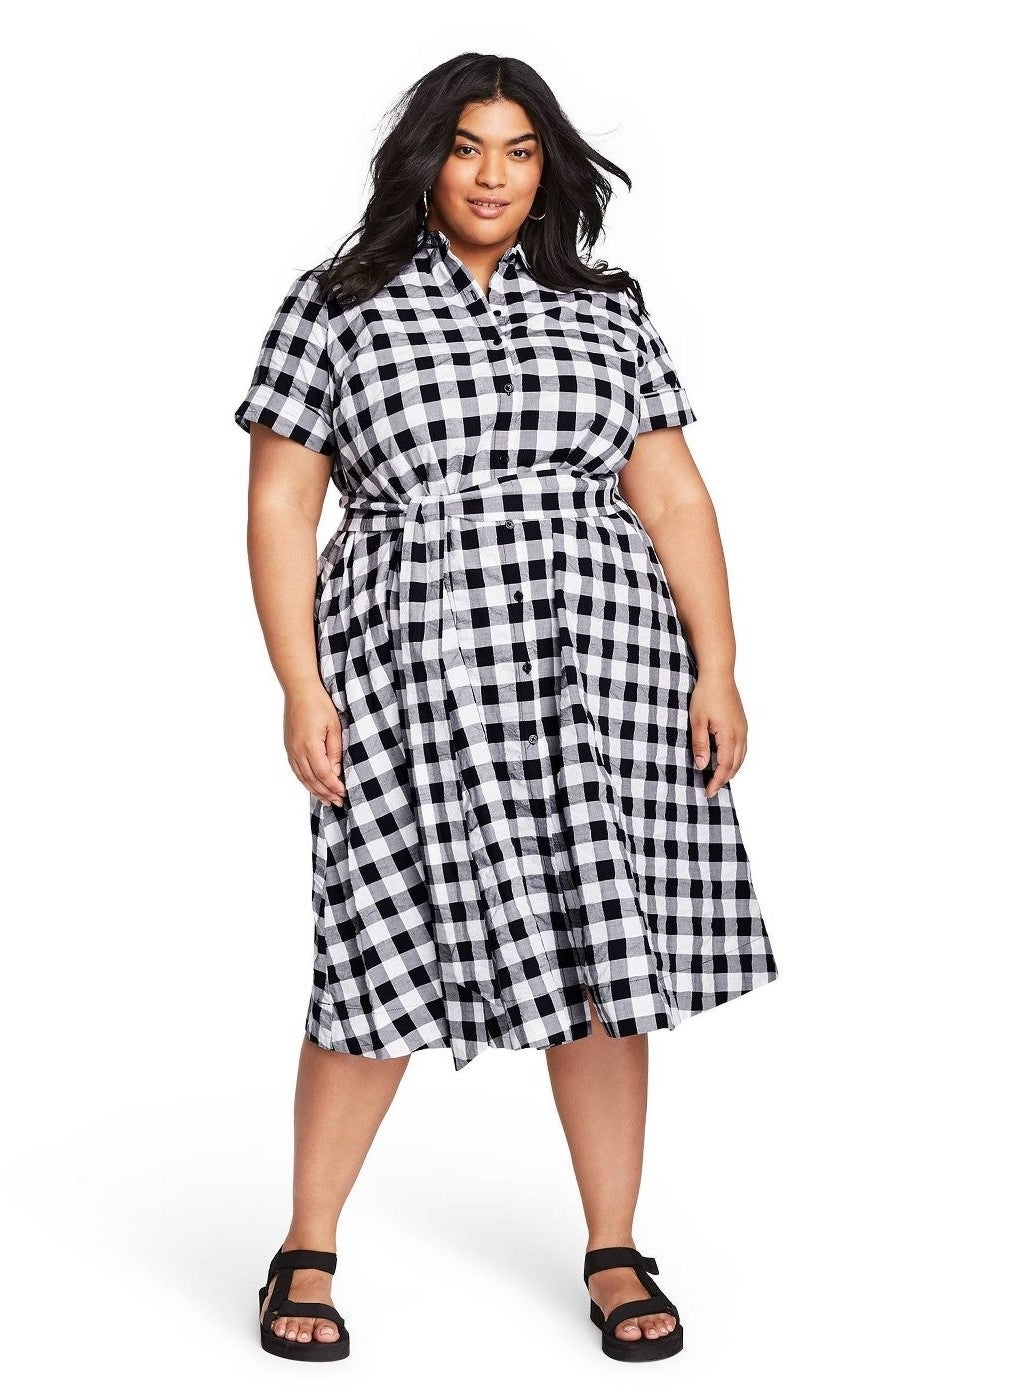 model wearing button-up black and white gingham midi dress